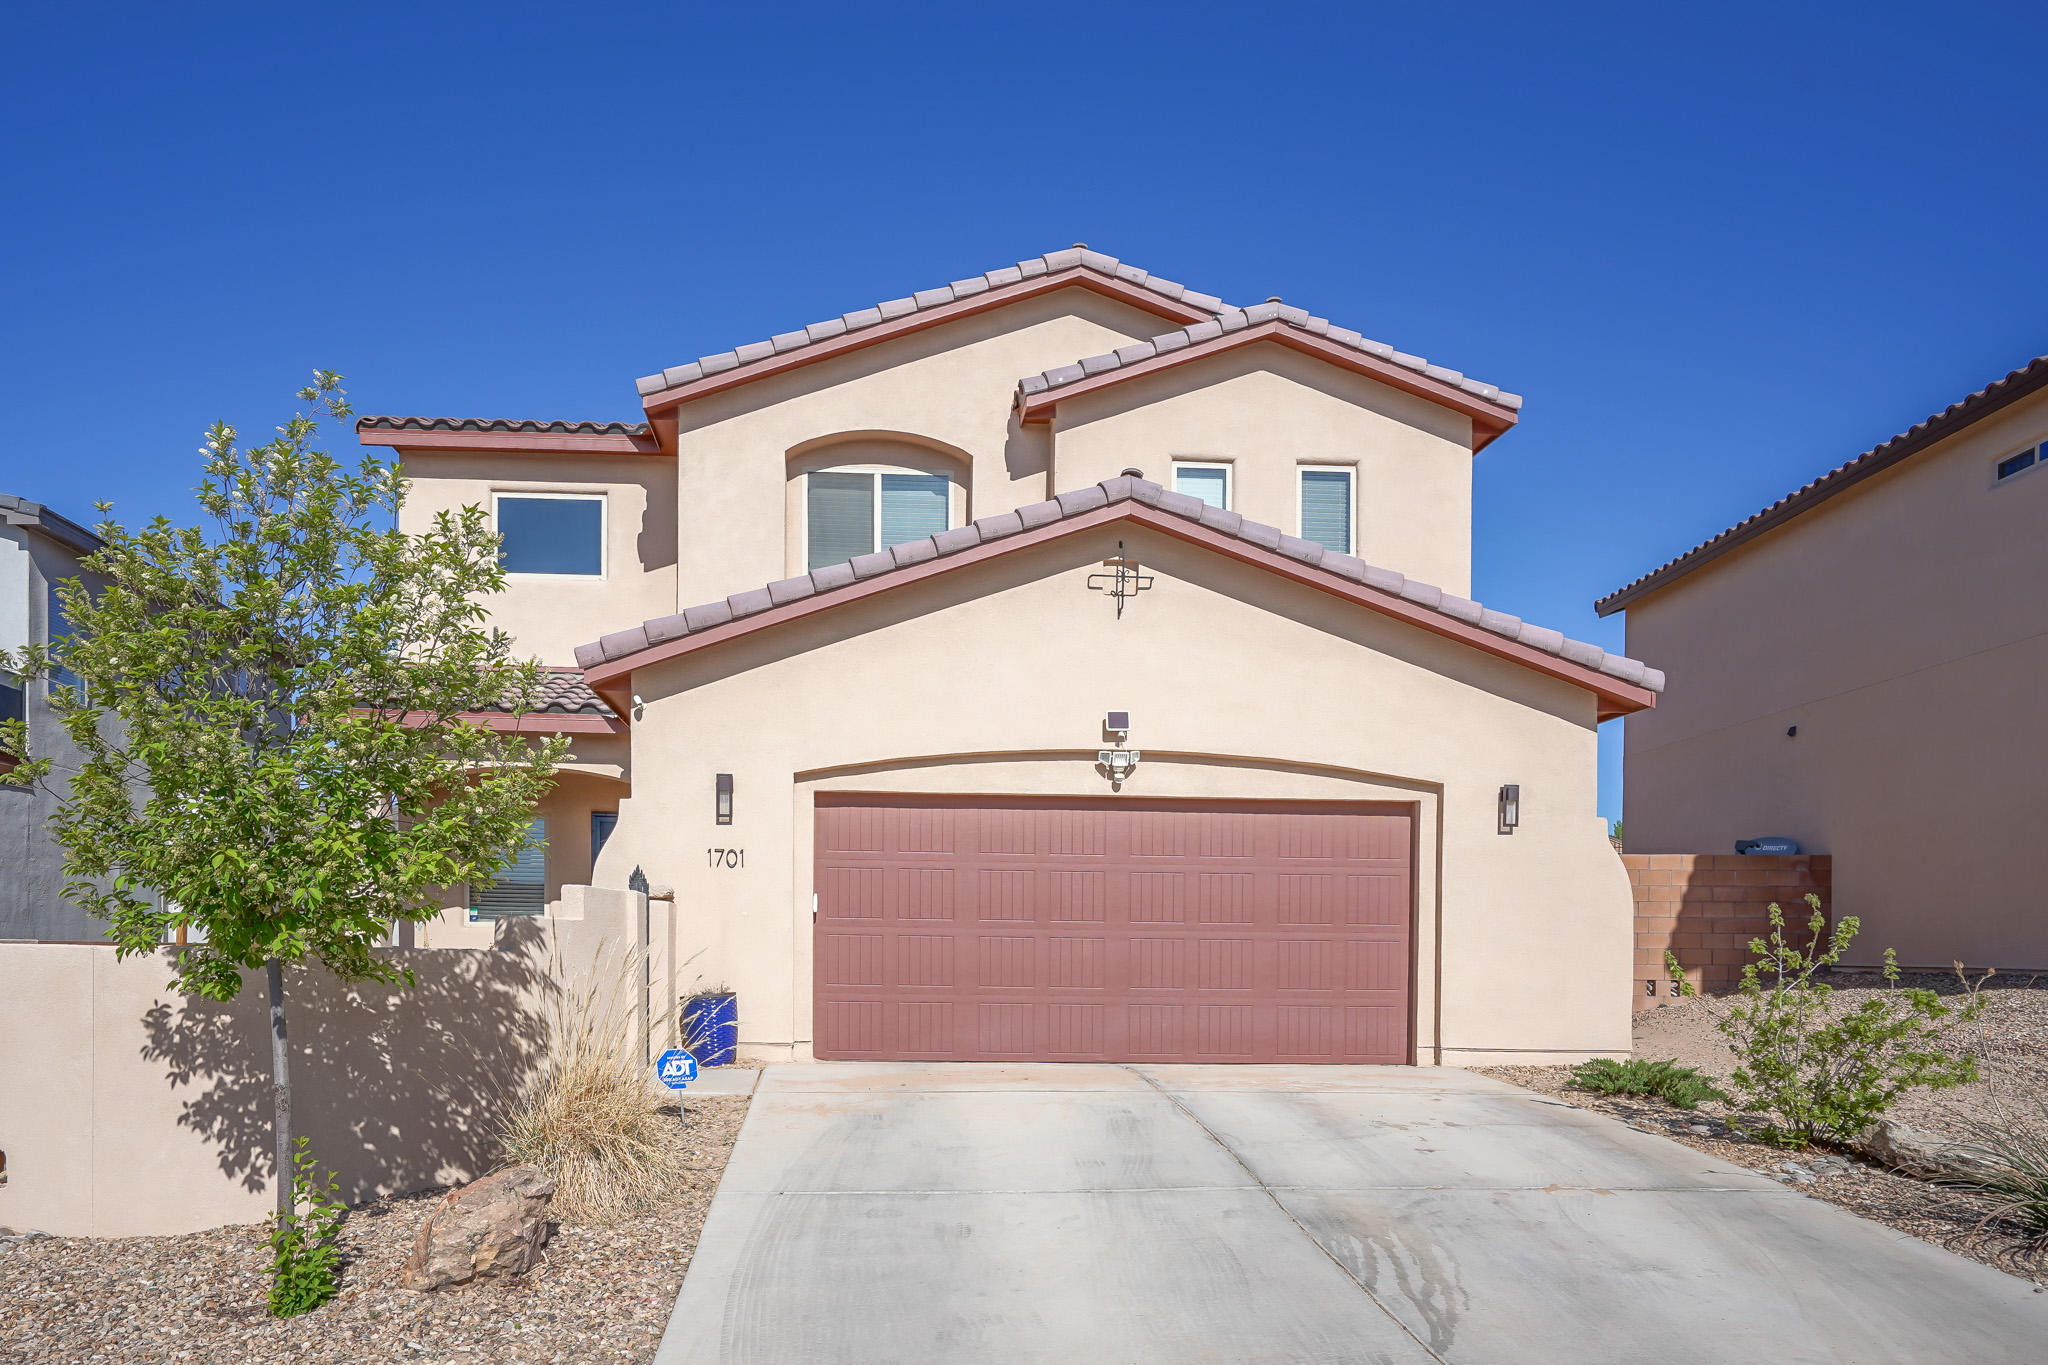 This is a beautiful two-story home with lovely curb appeal in Los Lunas,a few miles from I-25 for easy access. This home boasts an open floorplan & lots of natural lighting. All 3 bedrooms are upstairs along with 2 full baths, a loft area with breathtaking views of Tome hill & the Manzano Mountains. It's perfect for a cozy living room or office. The master boasts its own patio with spectacular views of Los Lunas Hill. The master bath has his & her sinks with separate bathtub/shower. The spacious kitchen comes equipped with  appliances, walk in pantry, granite countertops, and a long bar perfect for hosting your gatherings. The downstairs includes a half bath, under stairs storage, and oversized insulated garage with built in overhead storage. The yard has flowering bushes and vines.